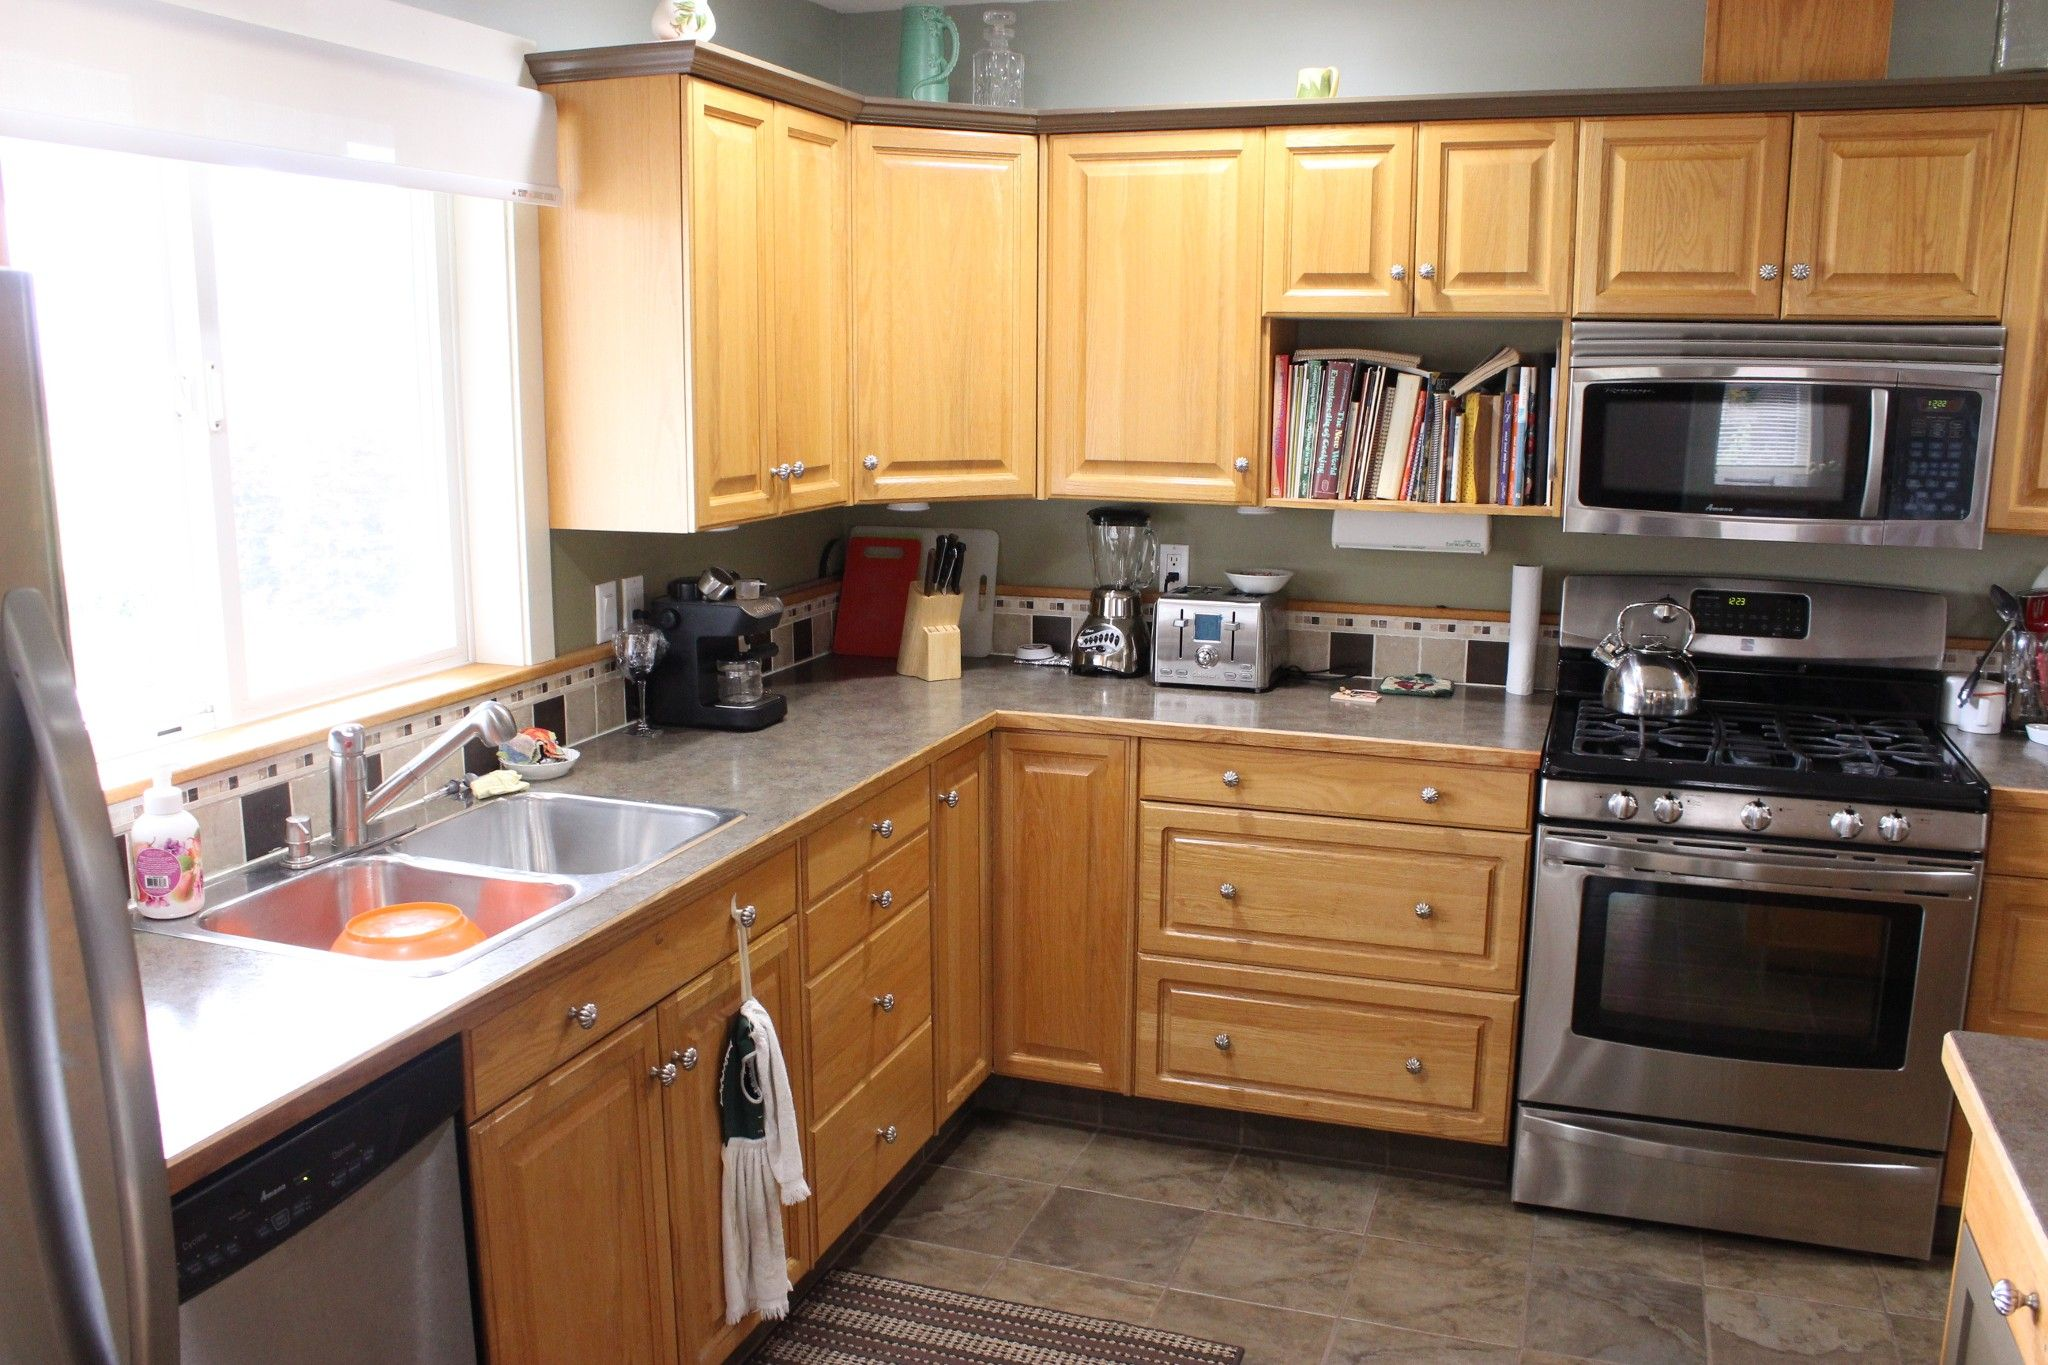 Photo 4: Photos: 3480 Navatanee Drive in Kamloops: South Thompson Valley House for sale : MLS®# 148627